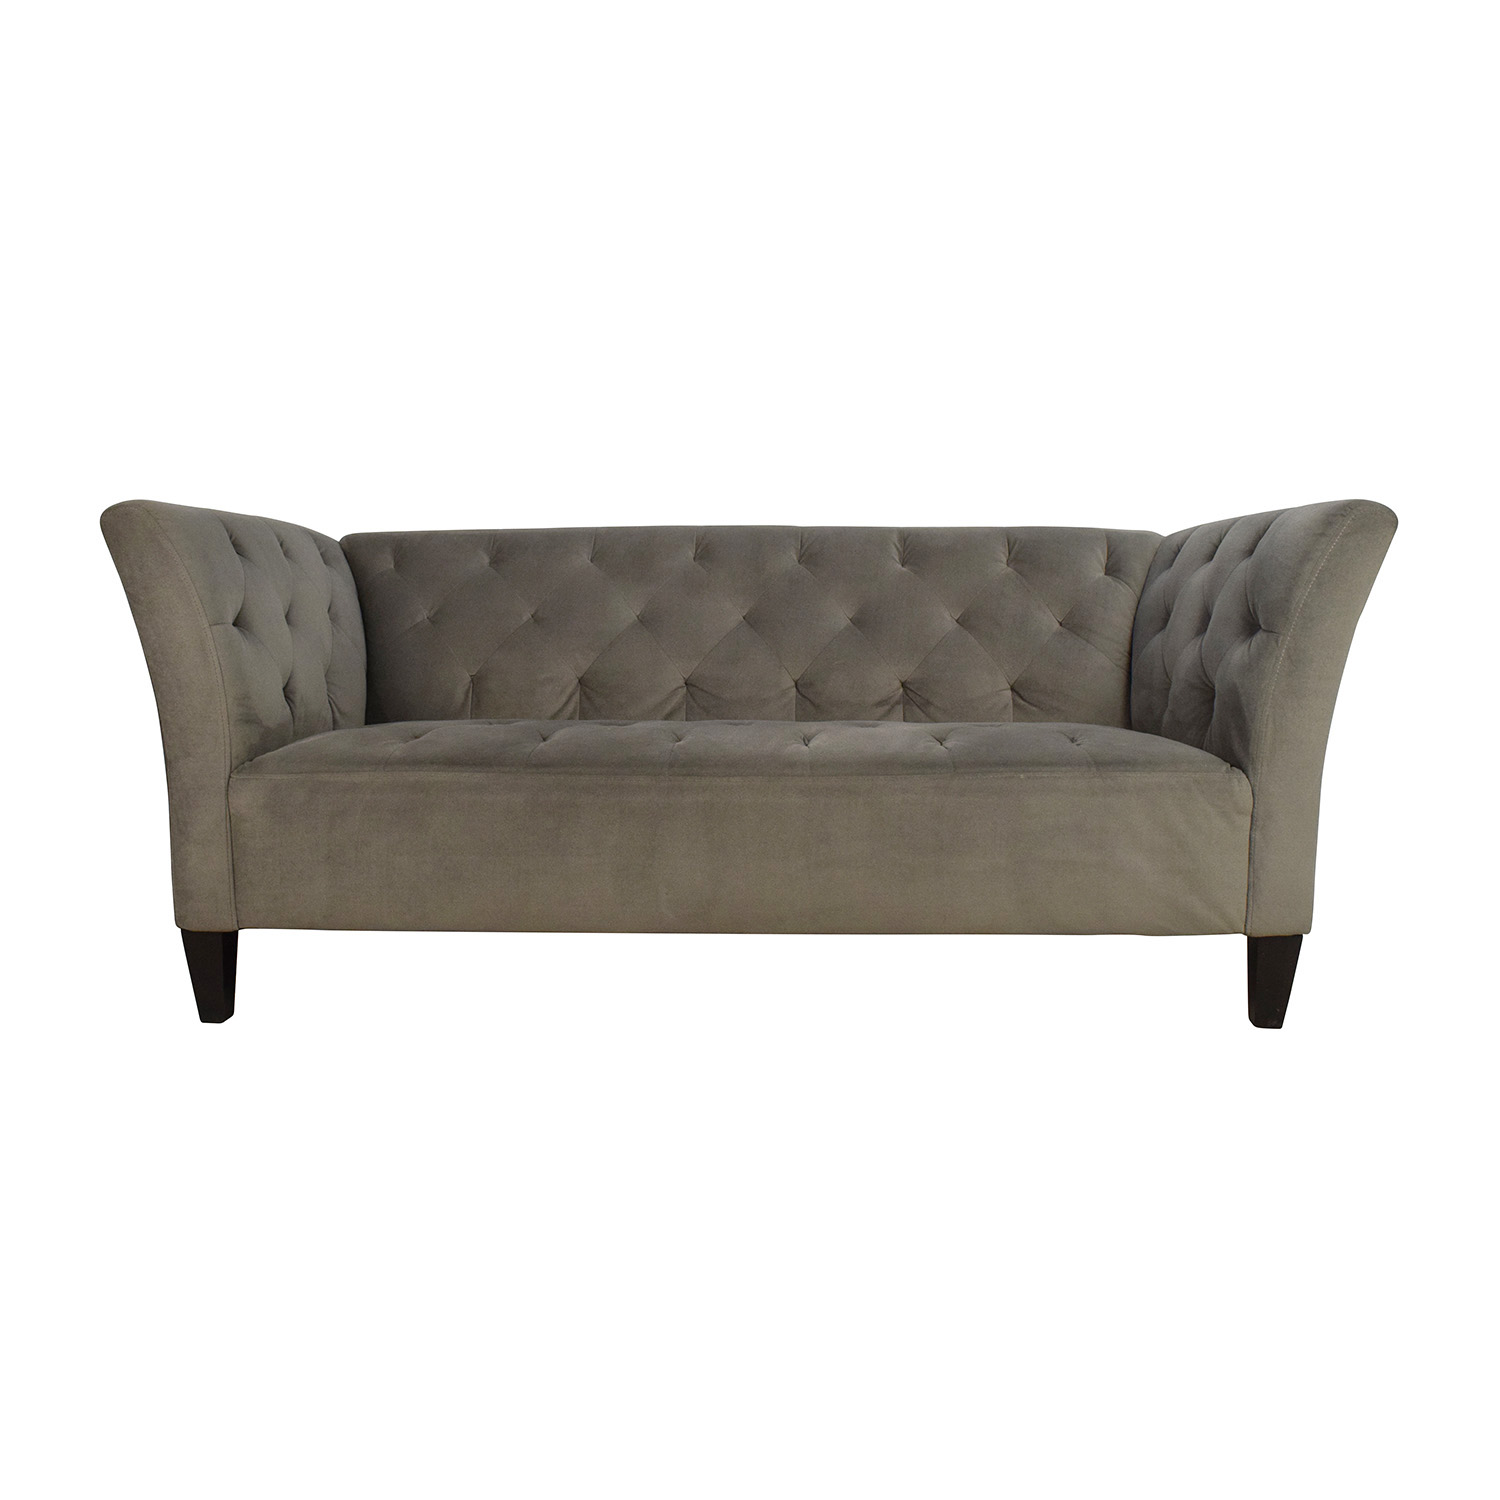 buy Macys Macys Lizbeth Gray Button Tufted Sofa online